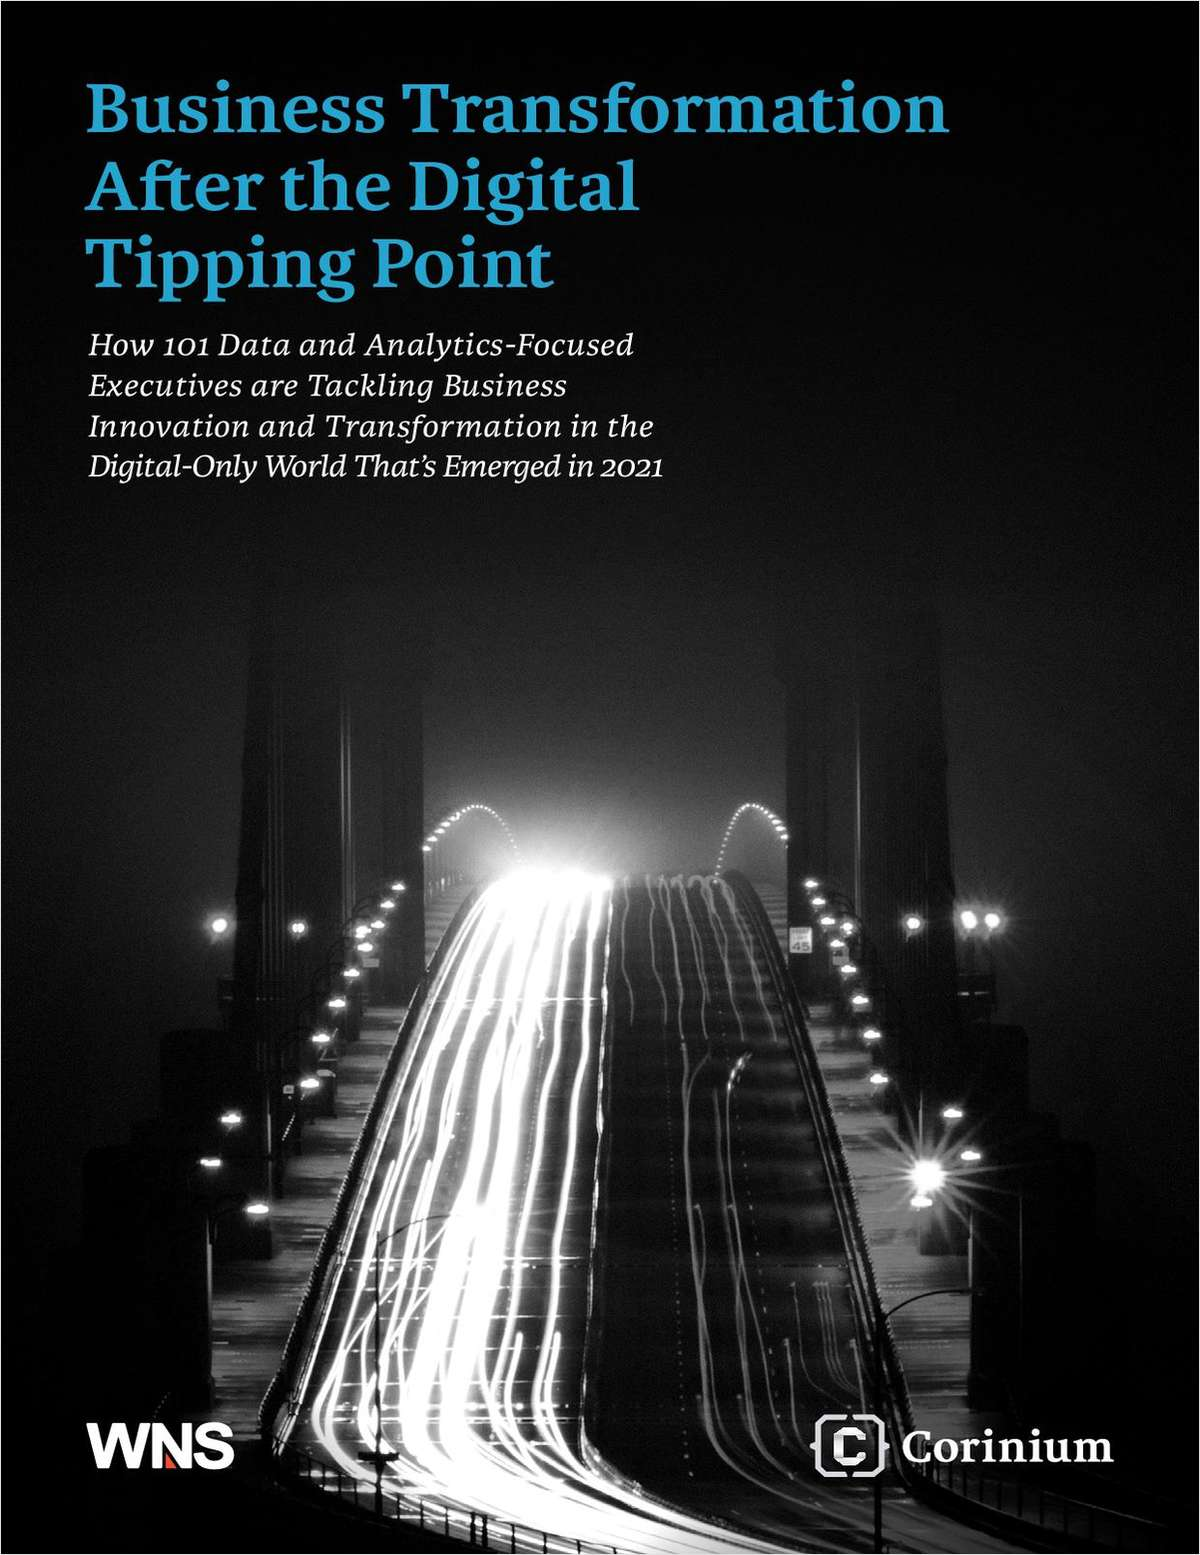 Business Transformation After the Digital Tipping Point